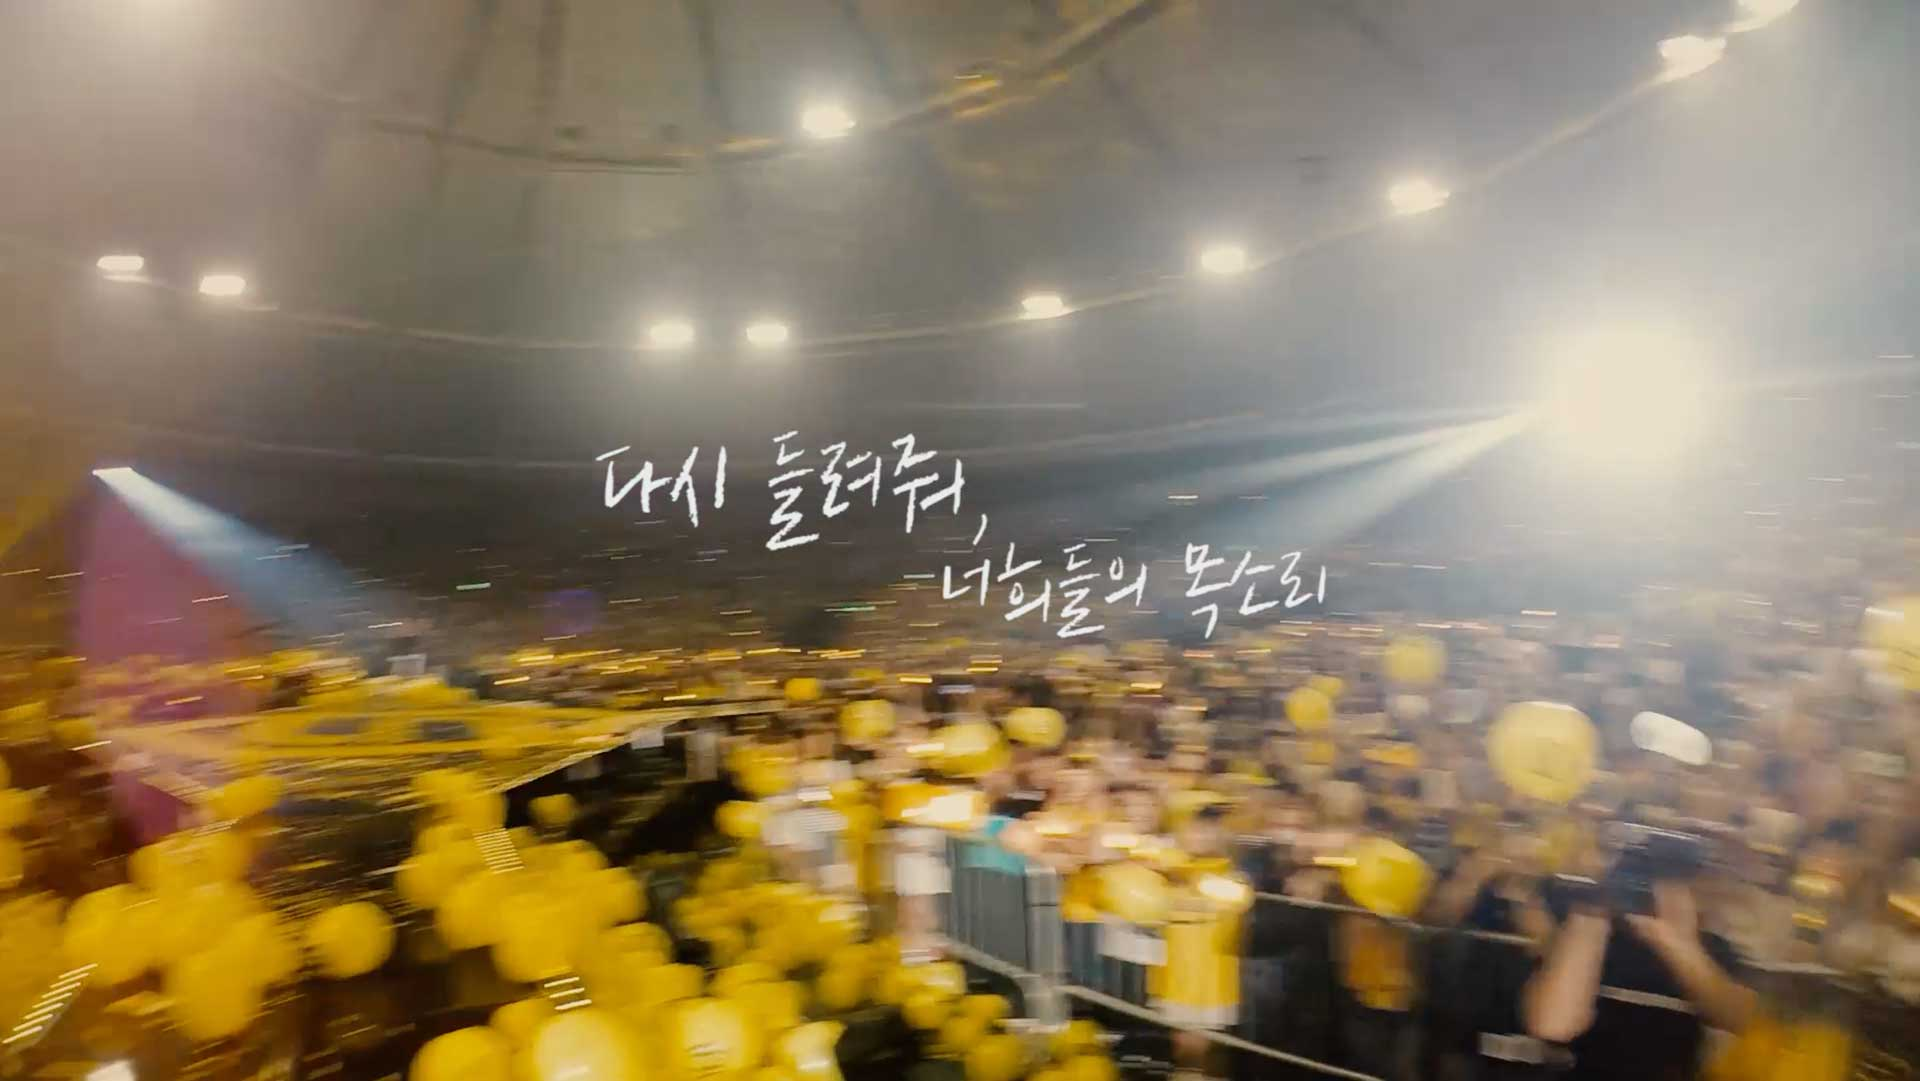 2017 SECHSKIES 20TH ANNIVERSARY CONCERT – MISSING YOUR VOICES